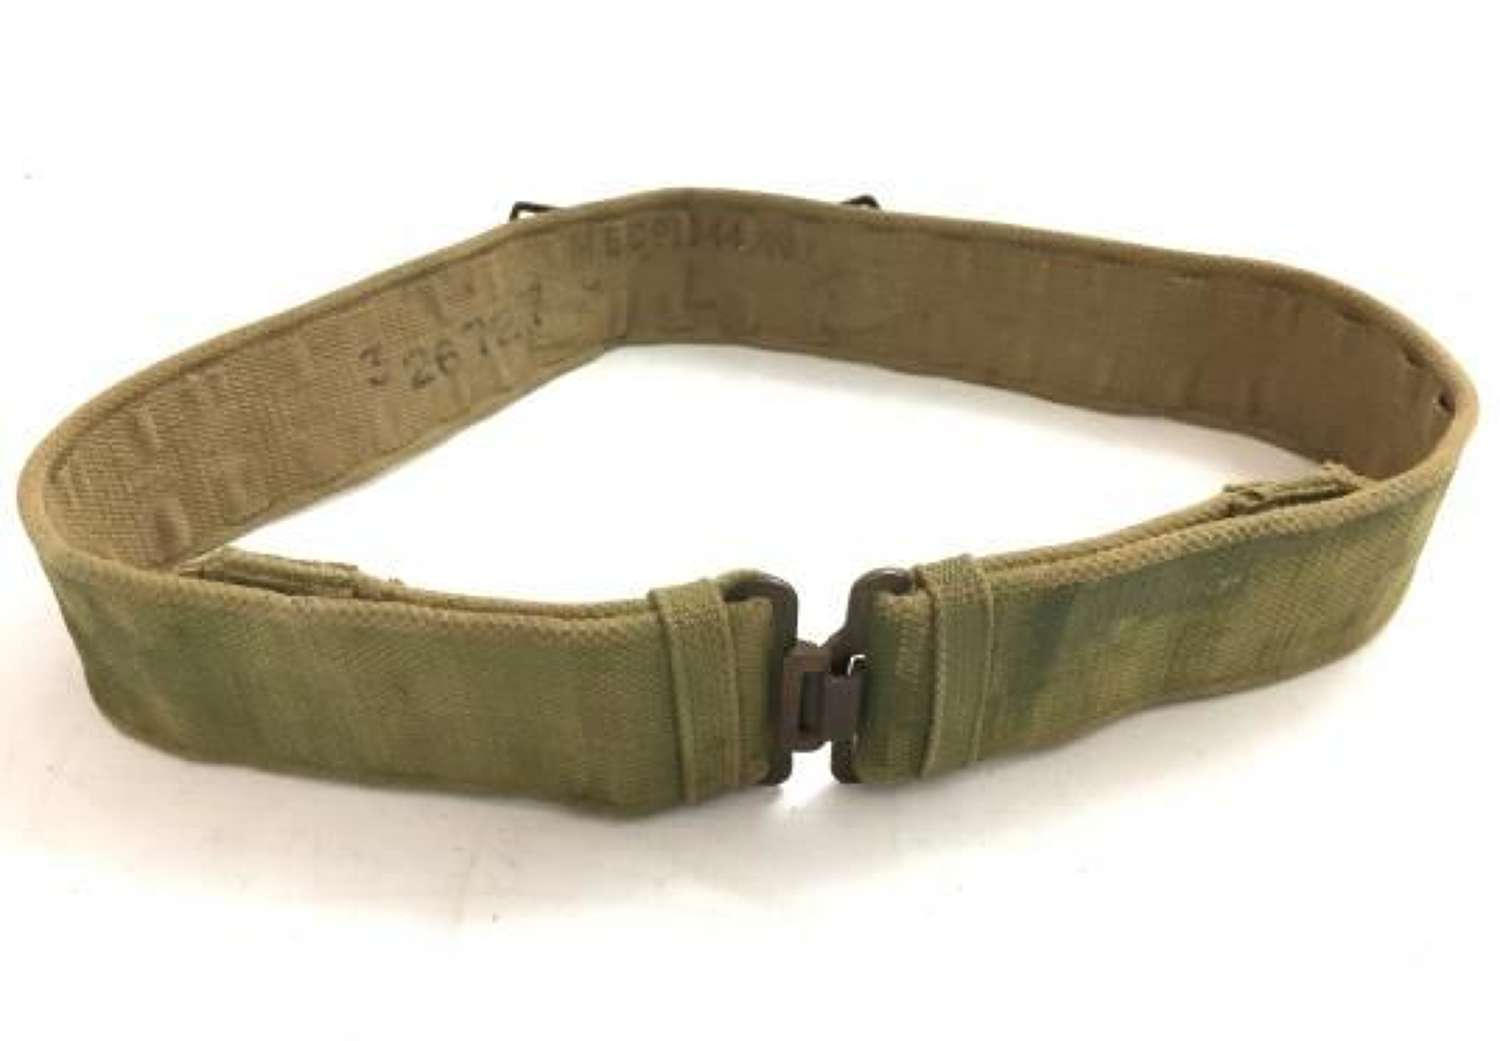 Original 1944 Dated 1937 Pattern Webbing Belt - Size Large